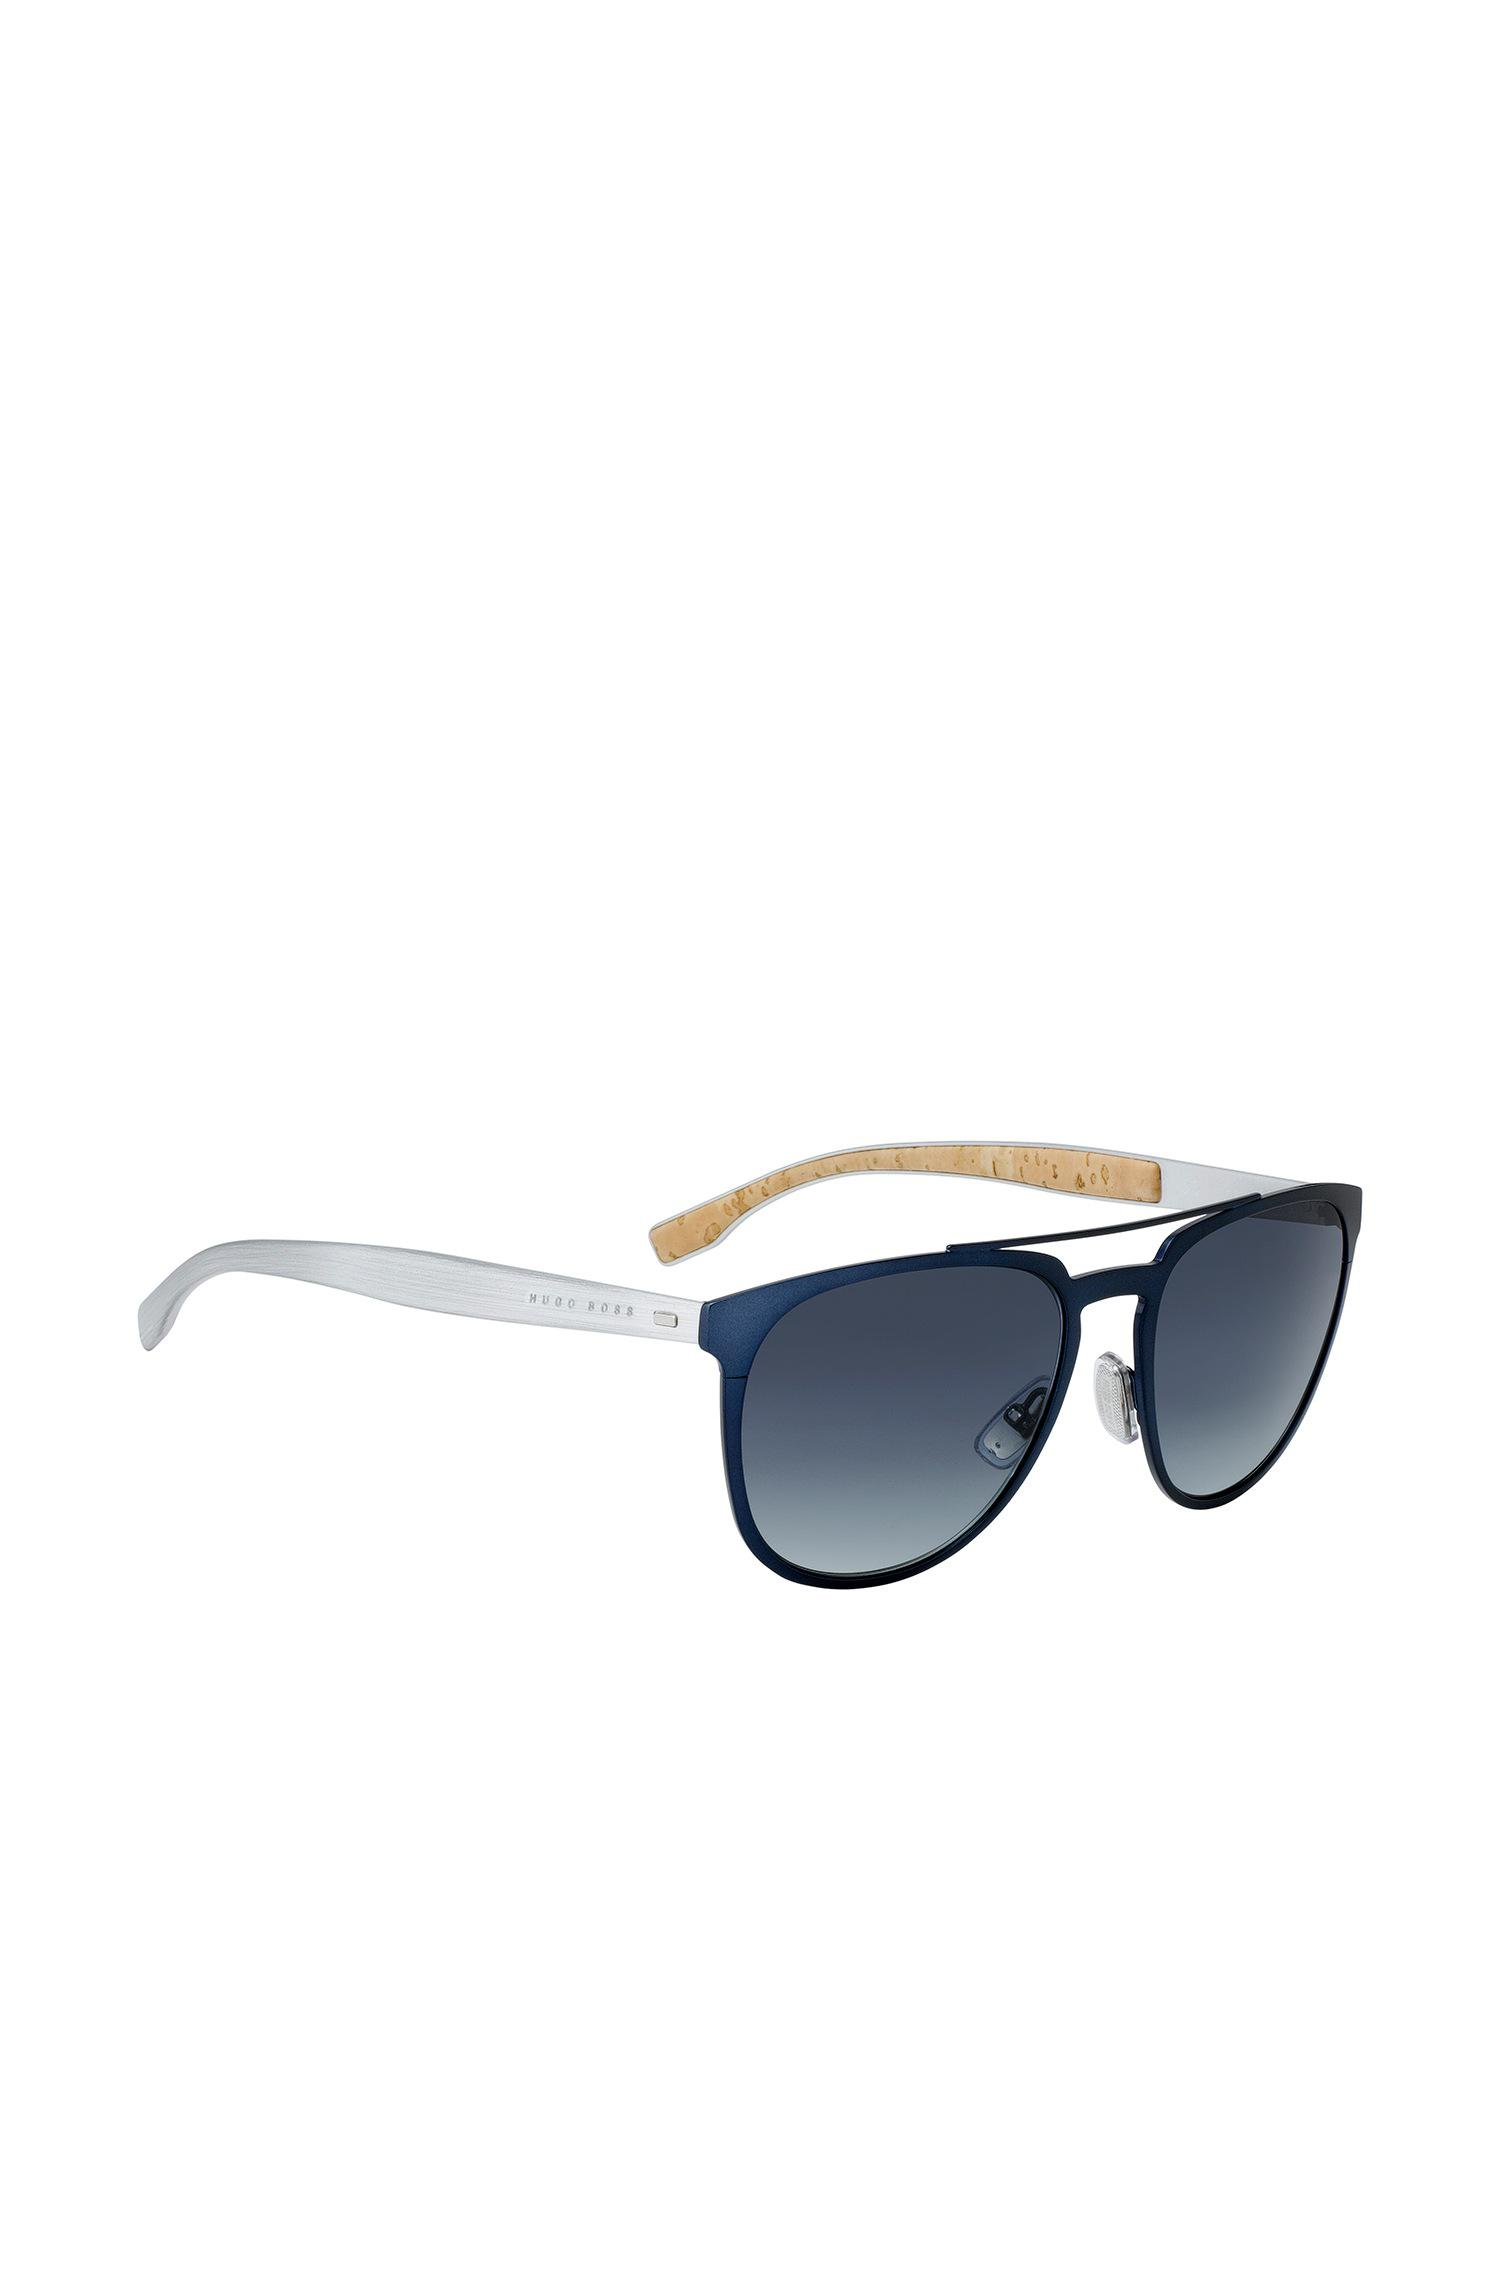 a74fd397ae4 Boss Aviator Sunglasses With Thin Blue Metallic Frames in Blue for ...